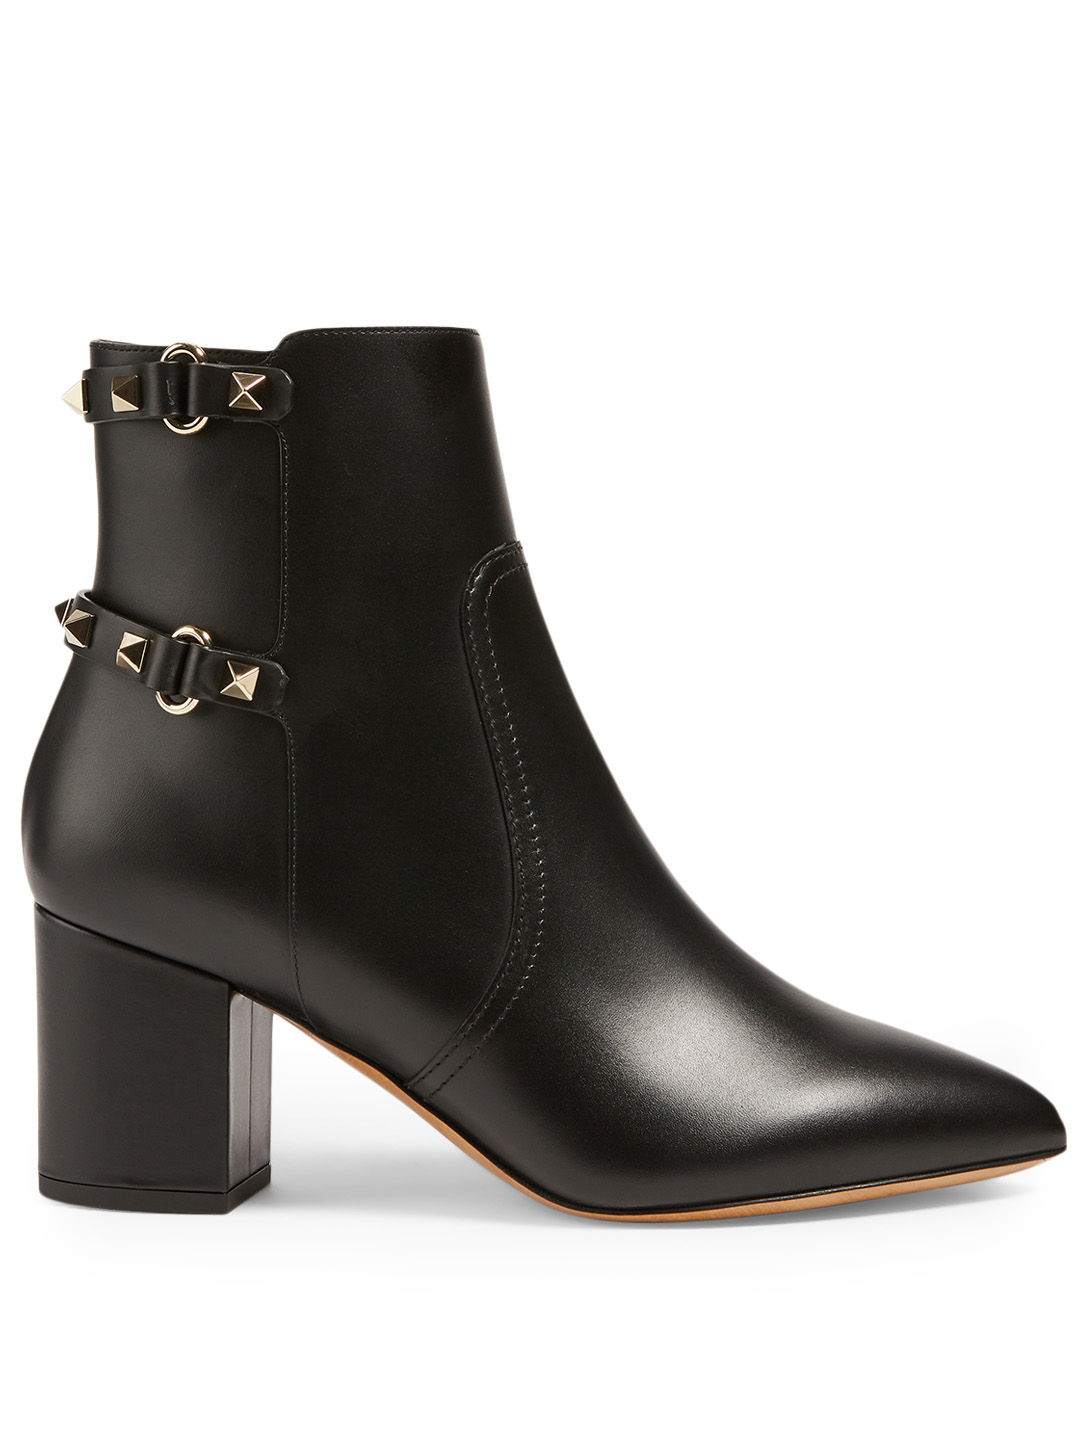 VALENTINO GARAVANI Rockstud Leather Heeled Ankle Boots Women's Black